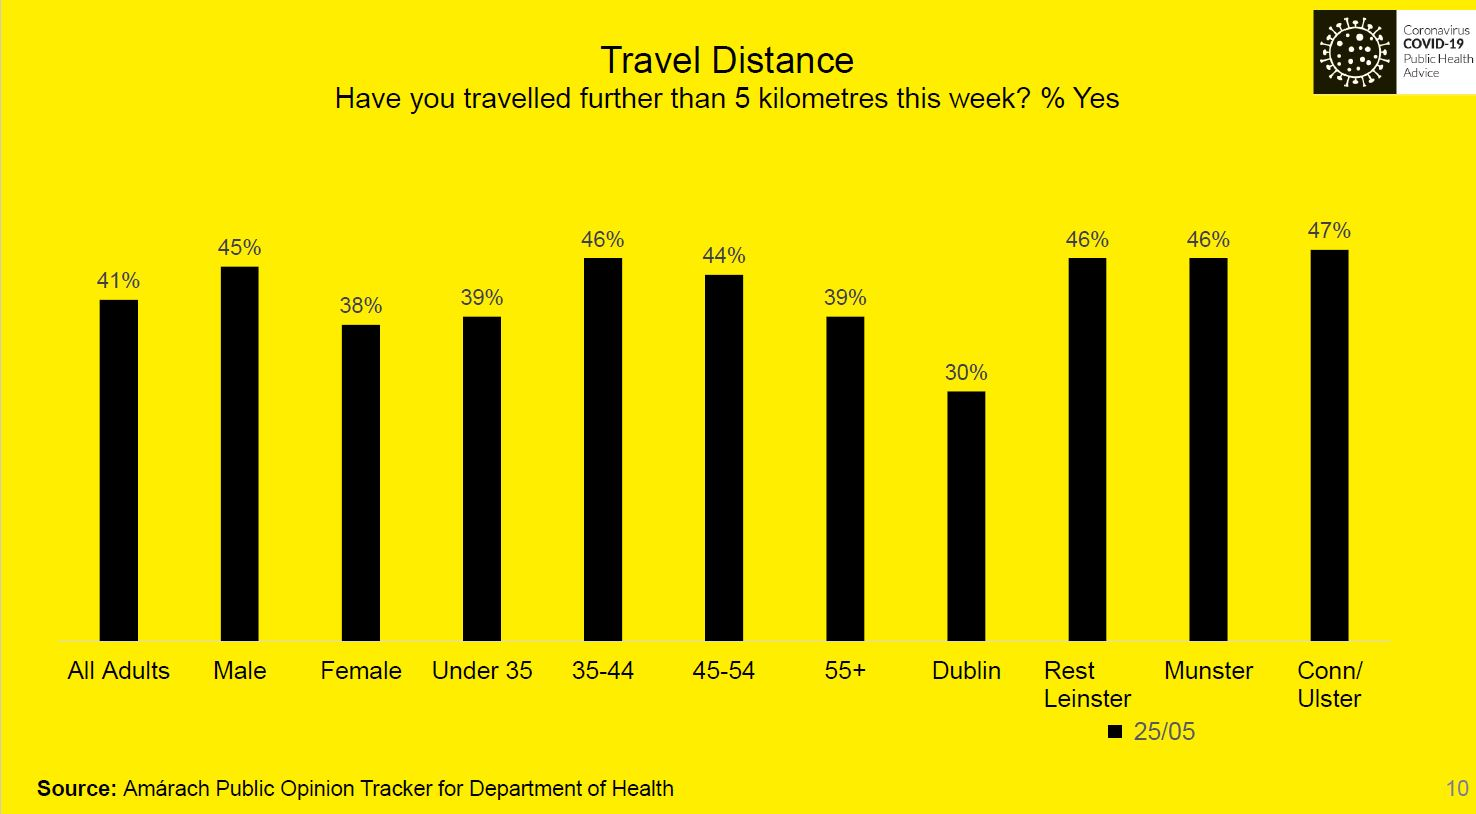 Travel Distance chart asking have you travelled further than 5km this week